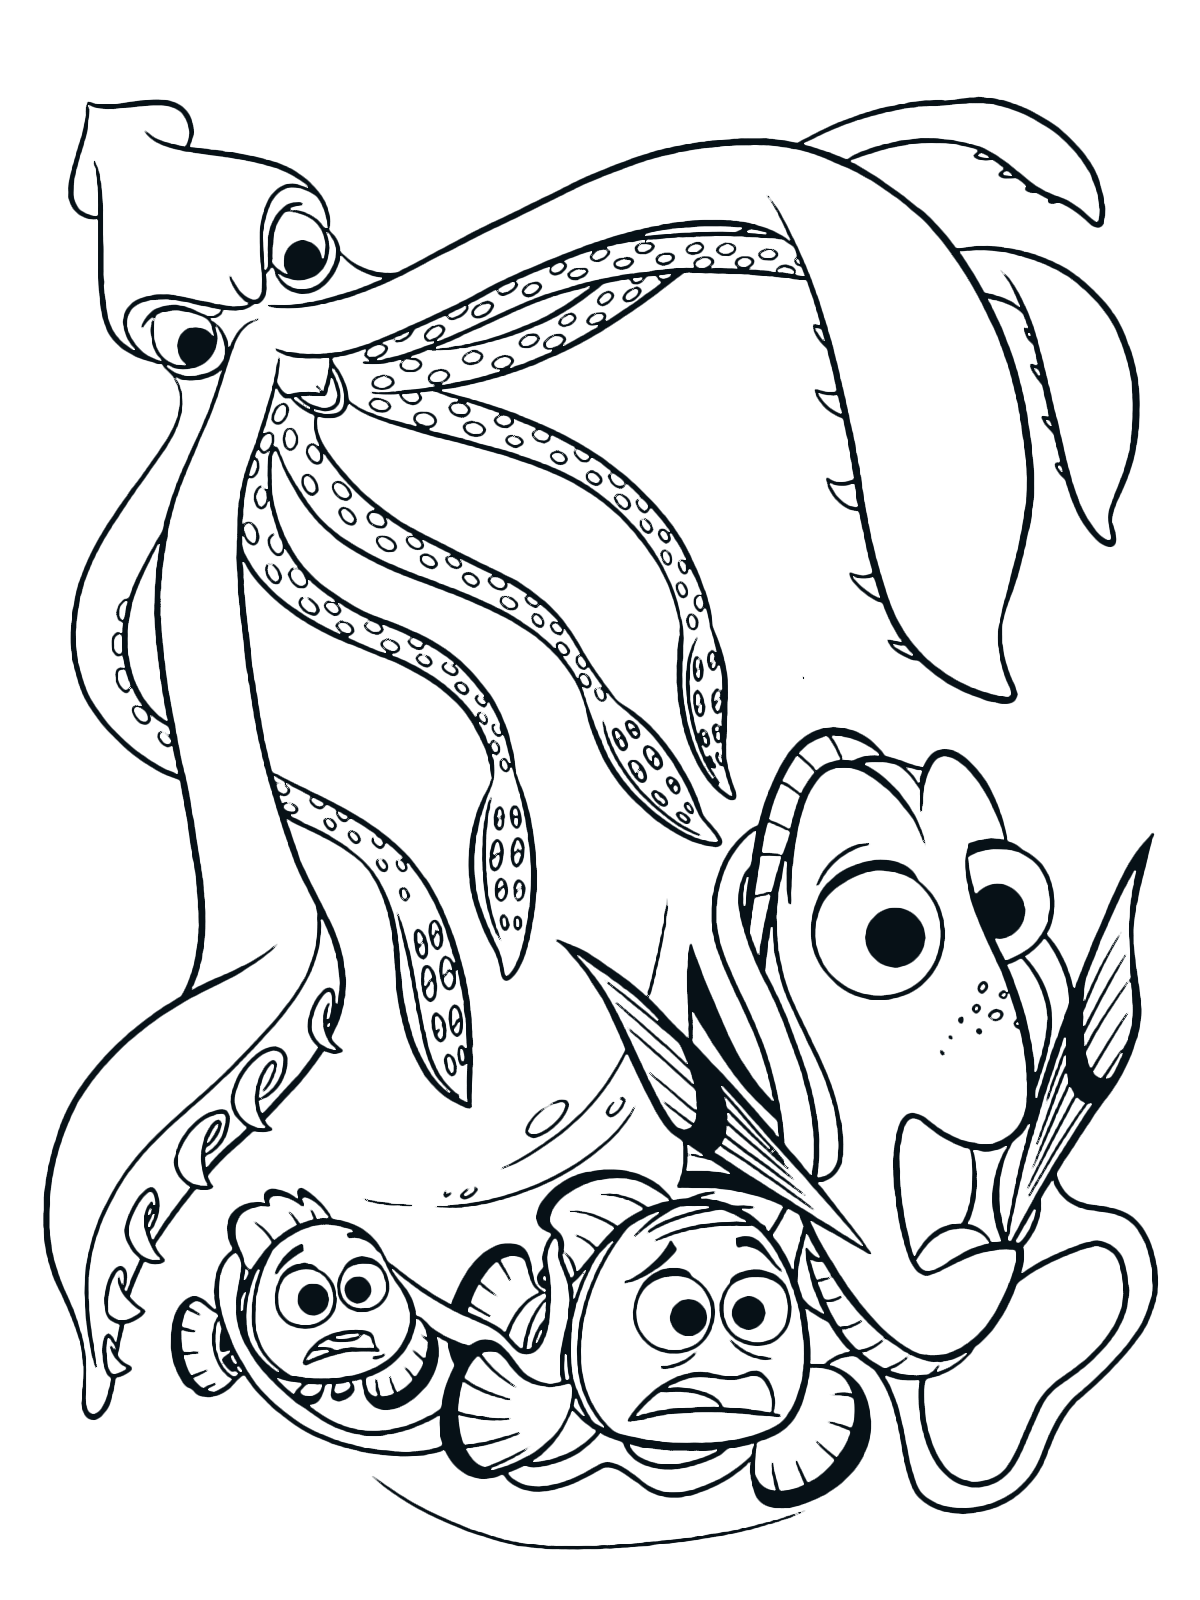 finding dory coloring page  dory marlin and nemo are